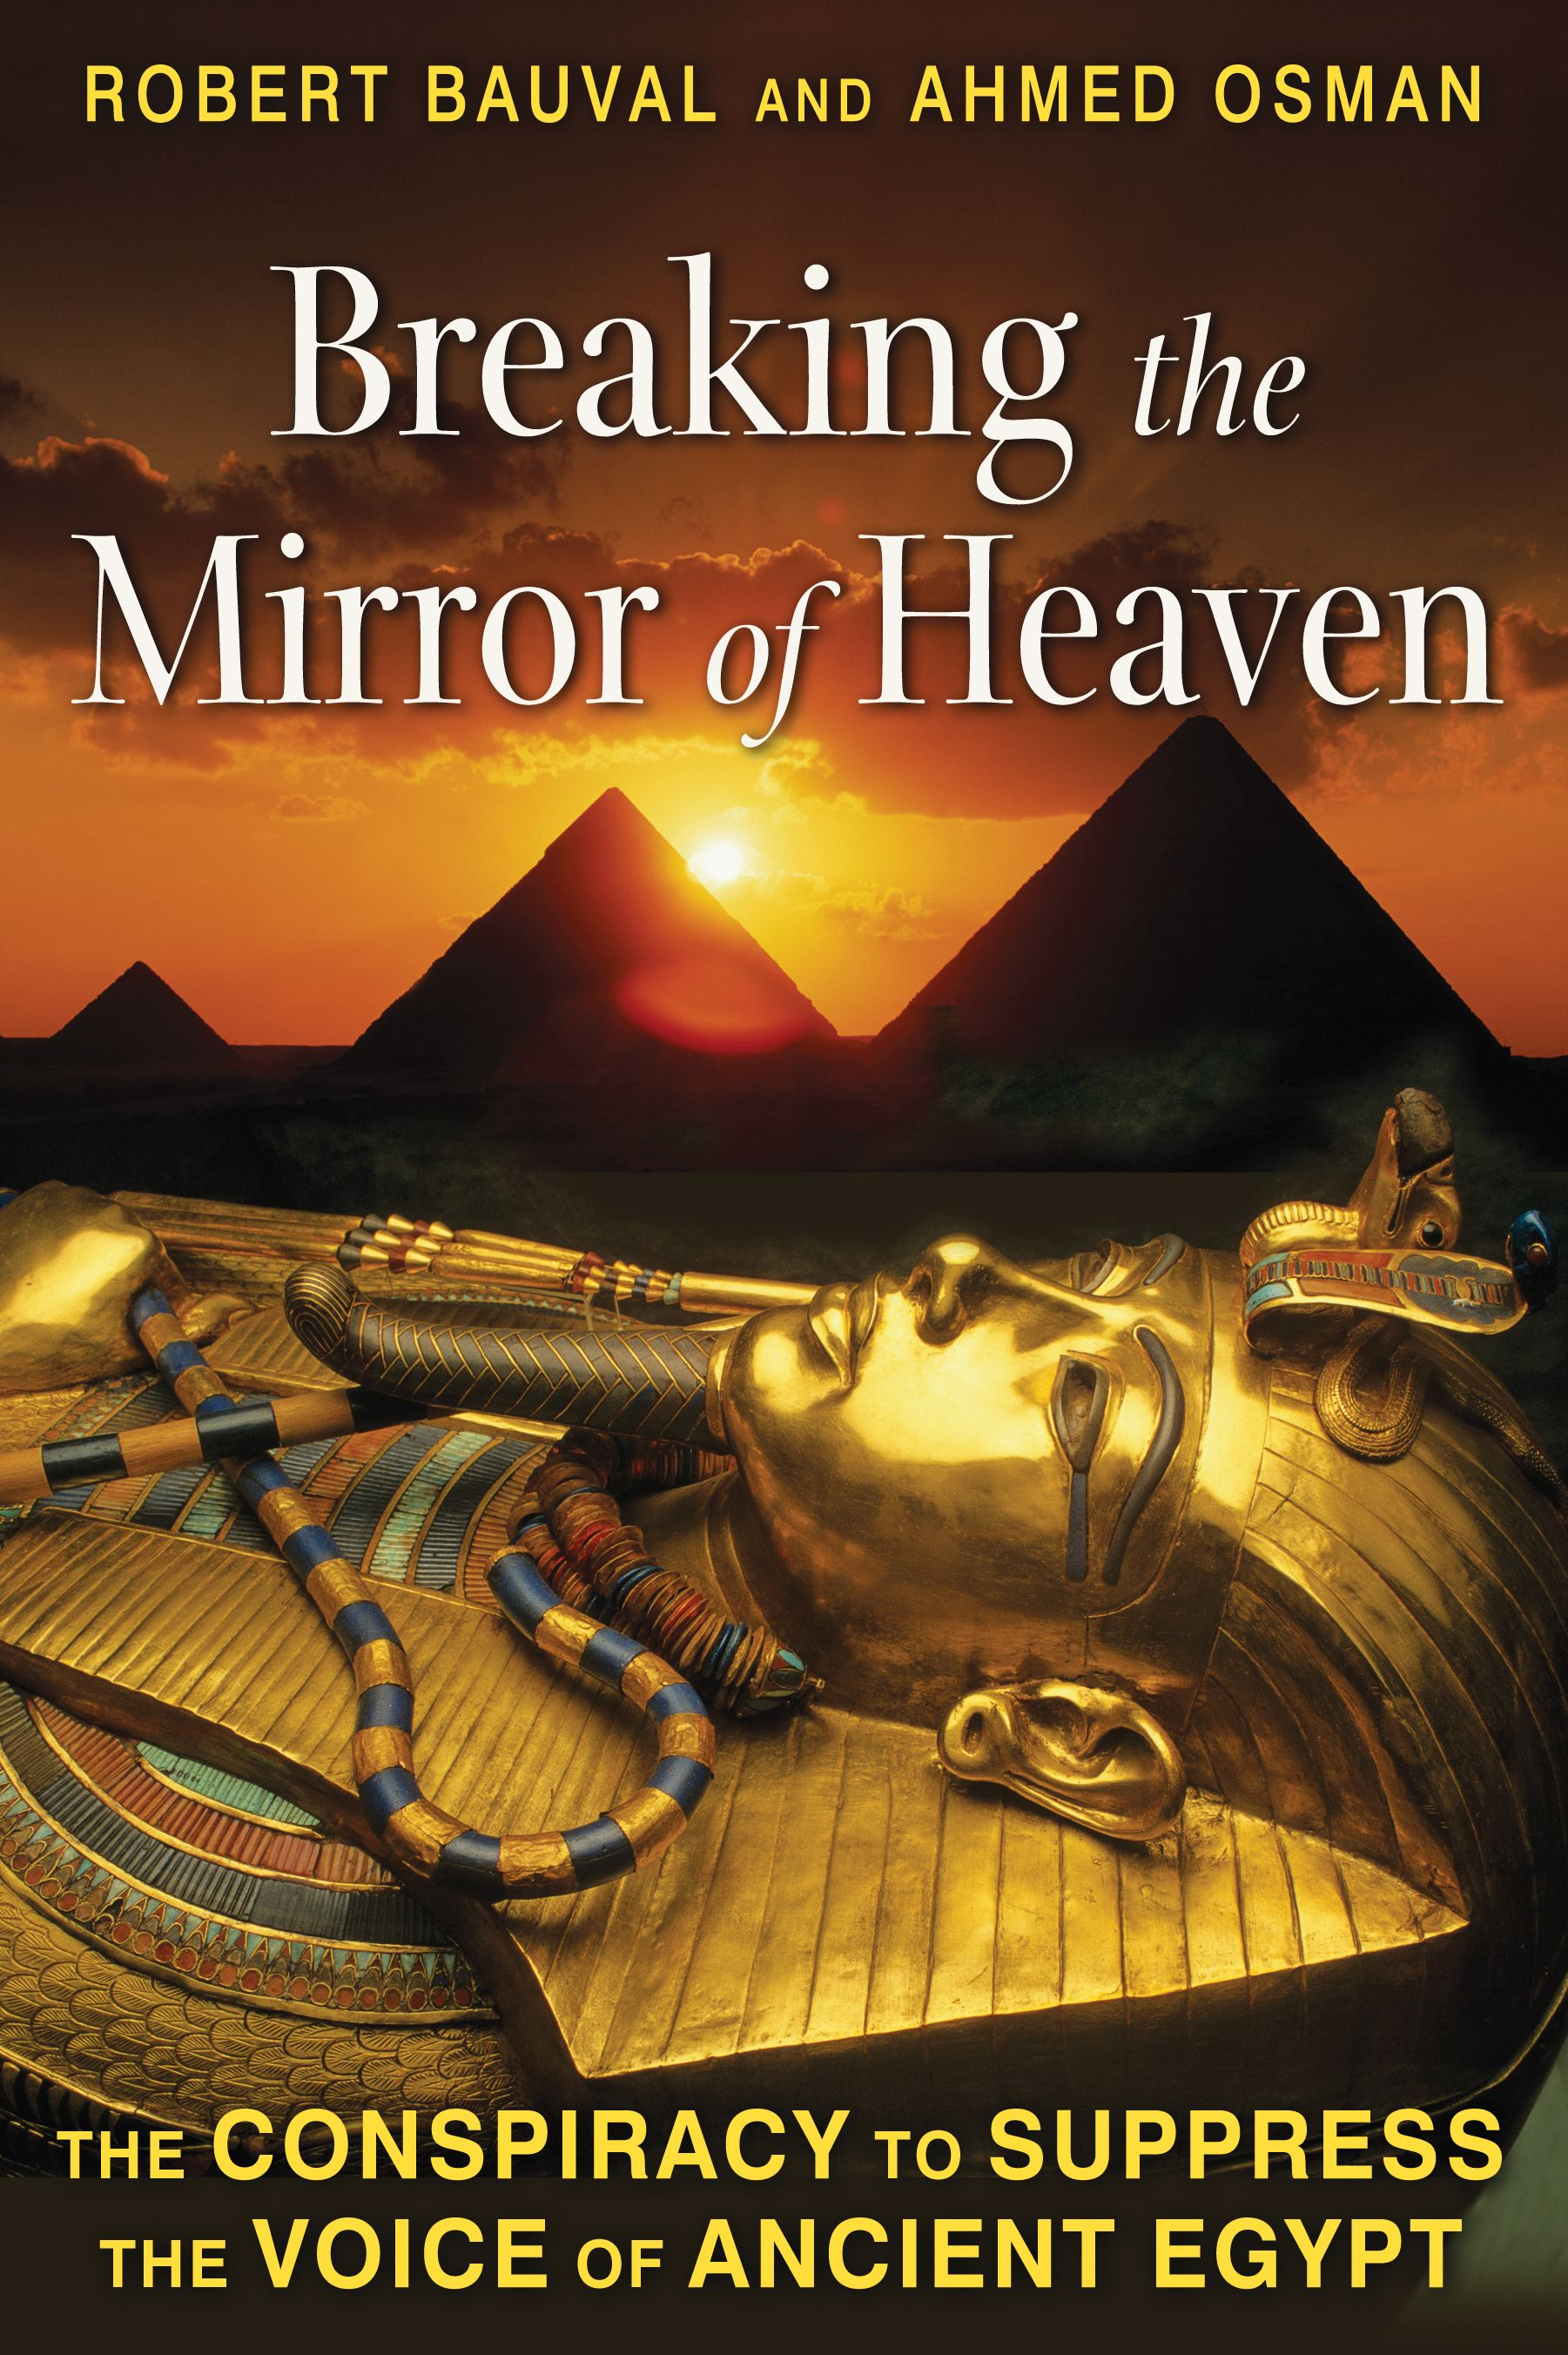 Breaking-the-mirror-of-heaven-9781591431565_hr